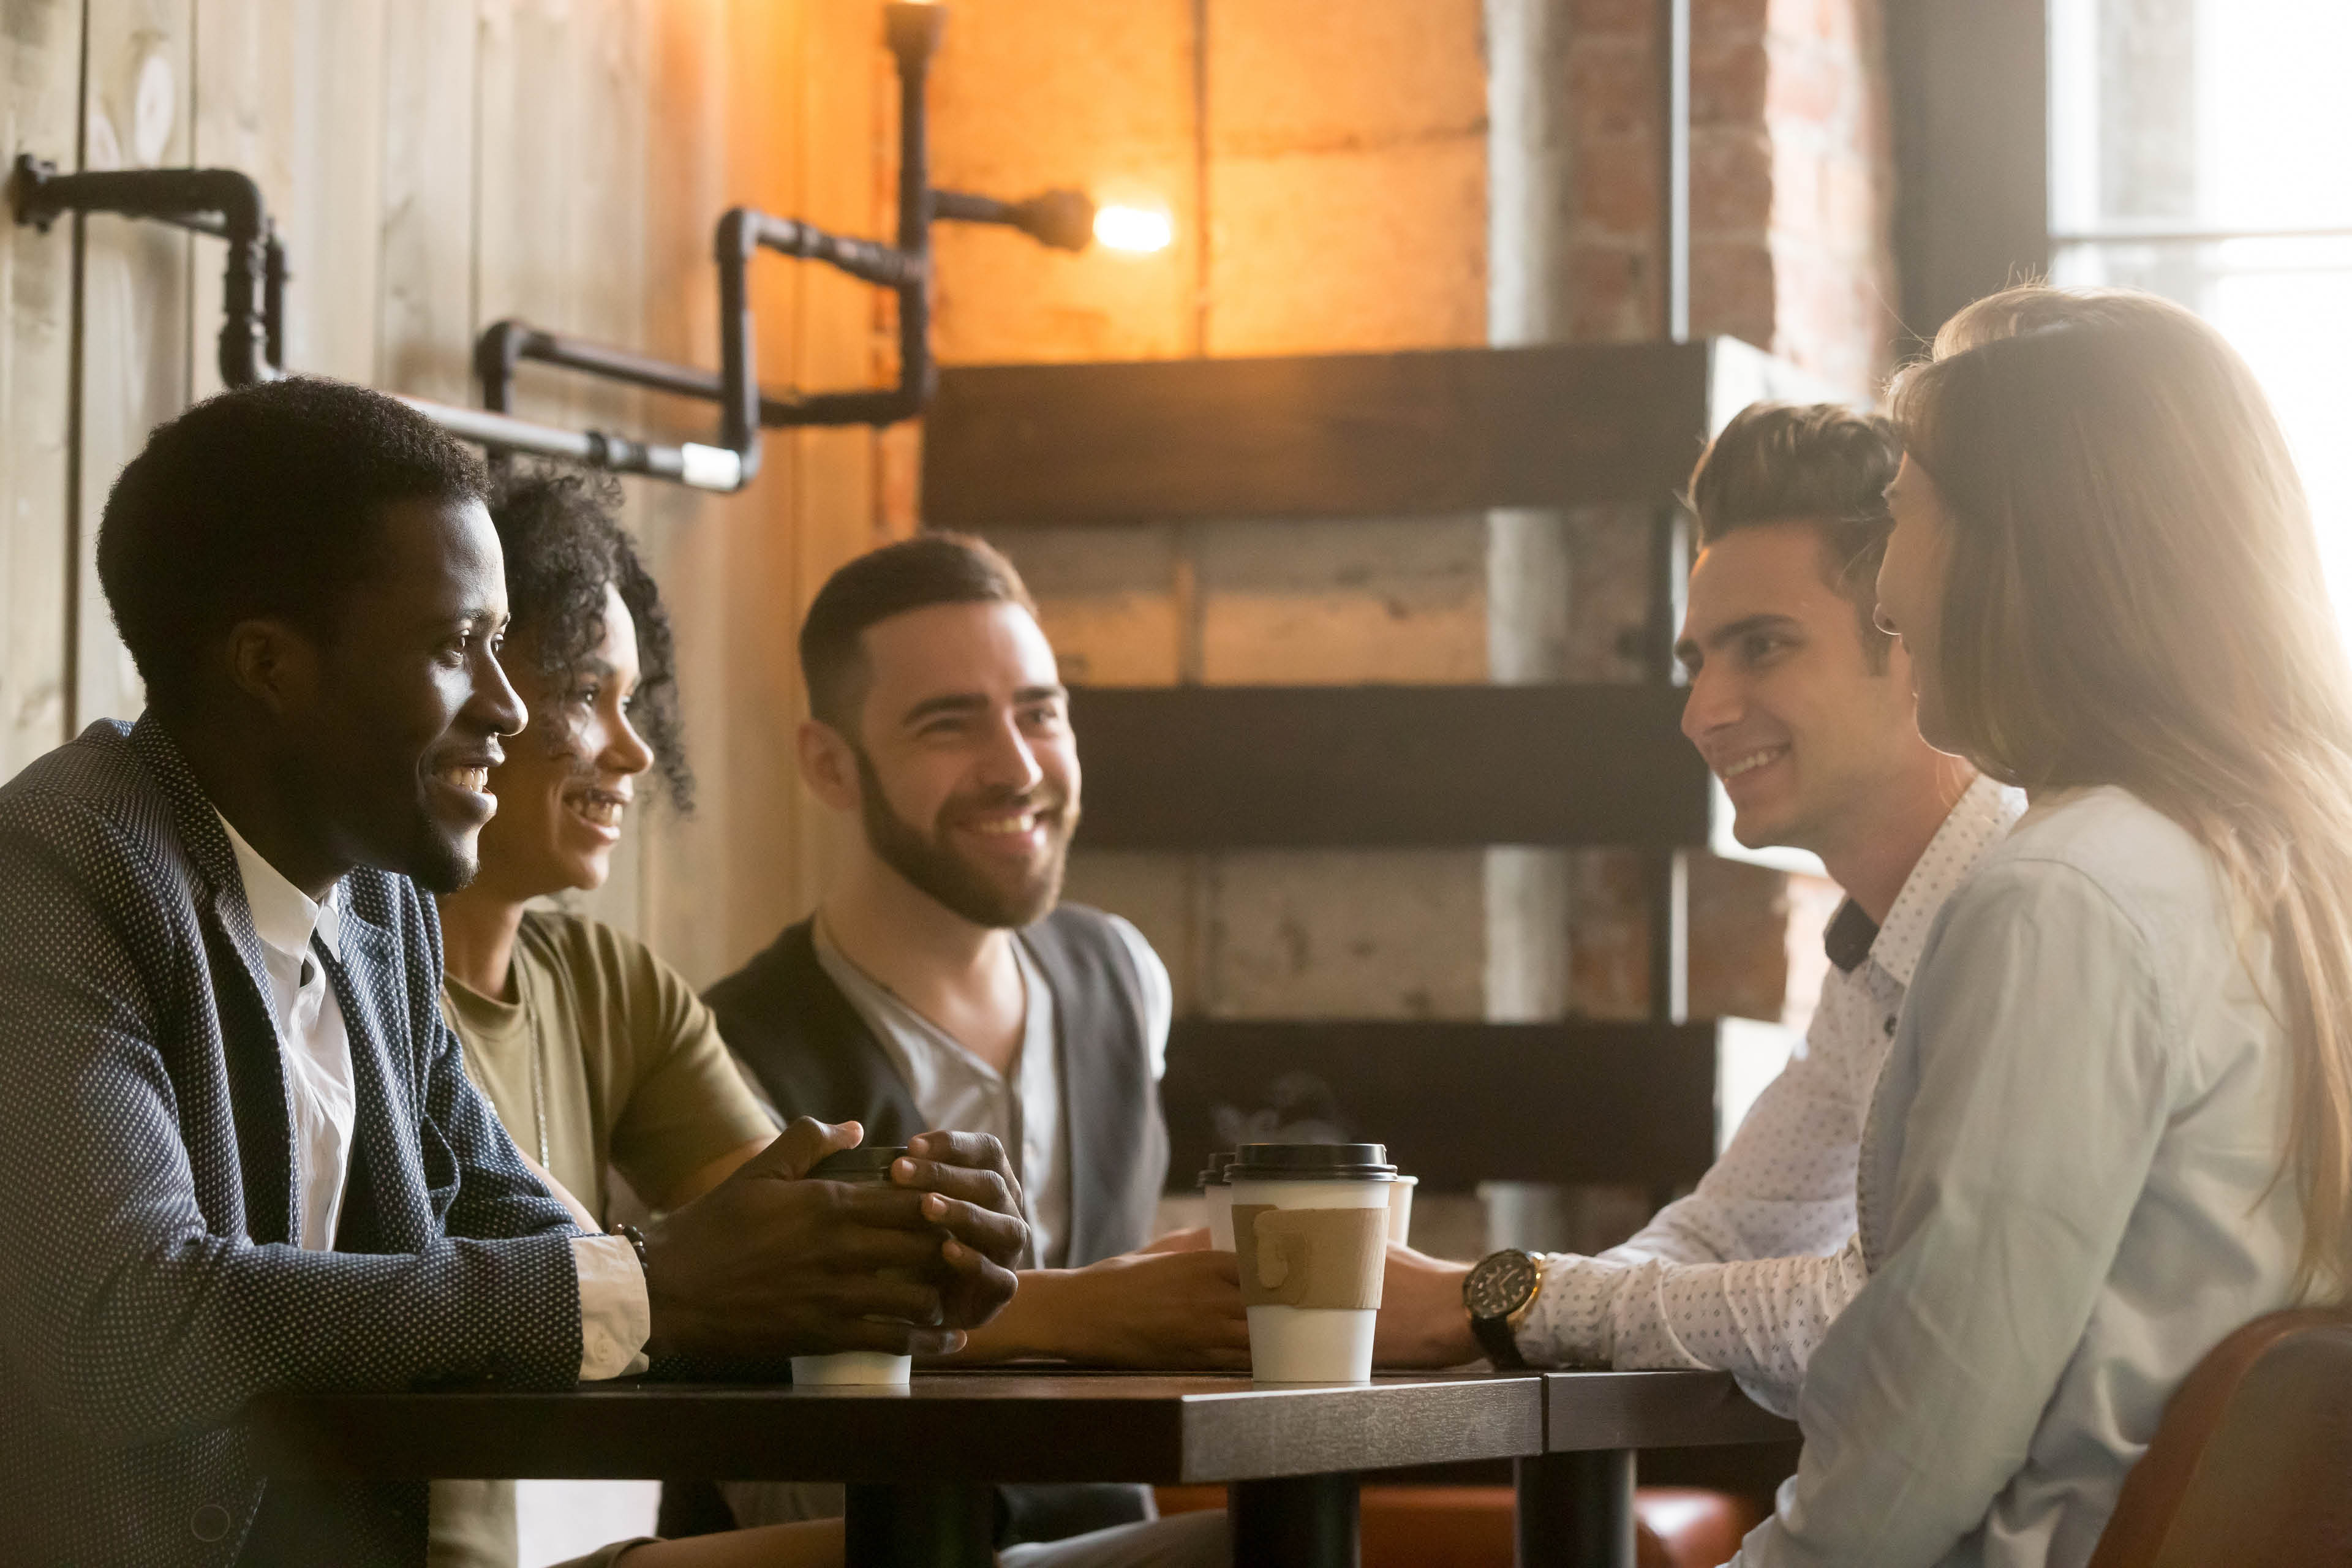 Group of people having coffee